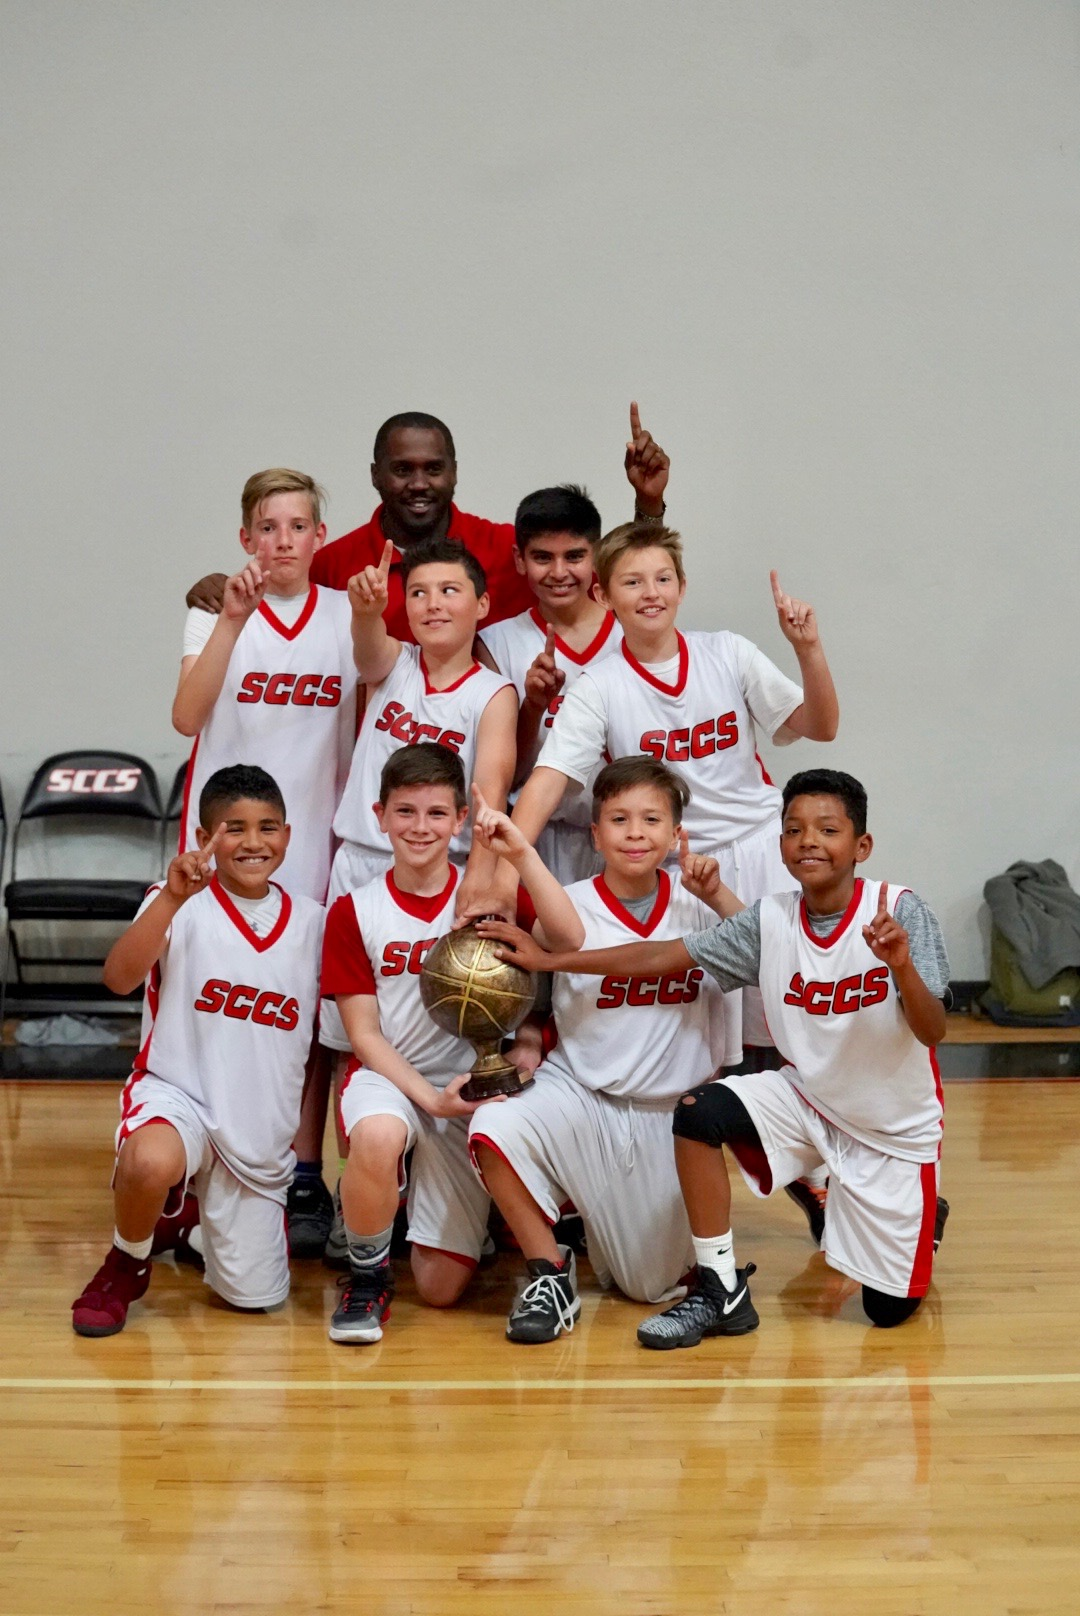 Elementary Boys Basketball Win the Championship